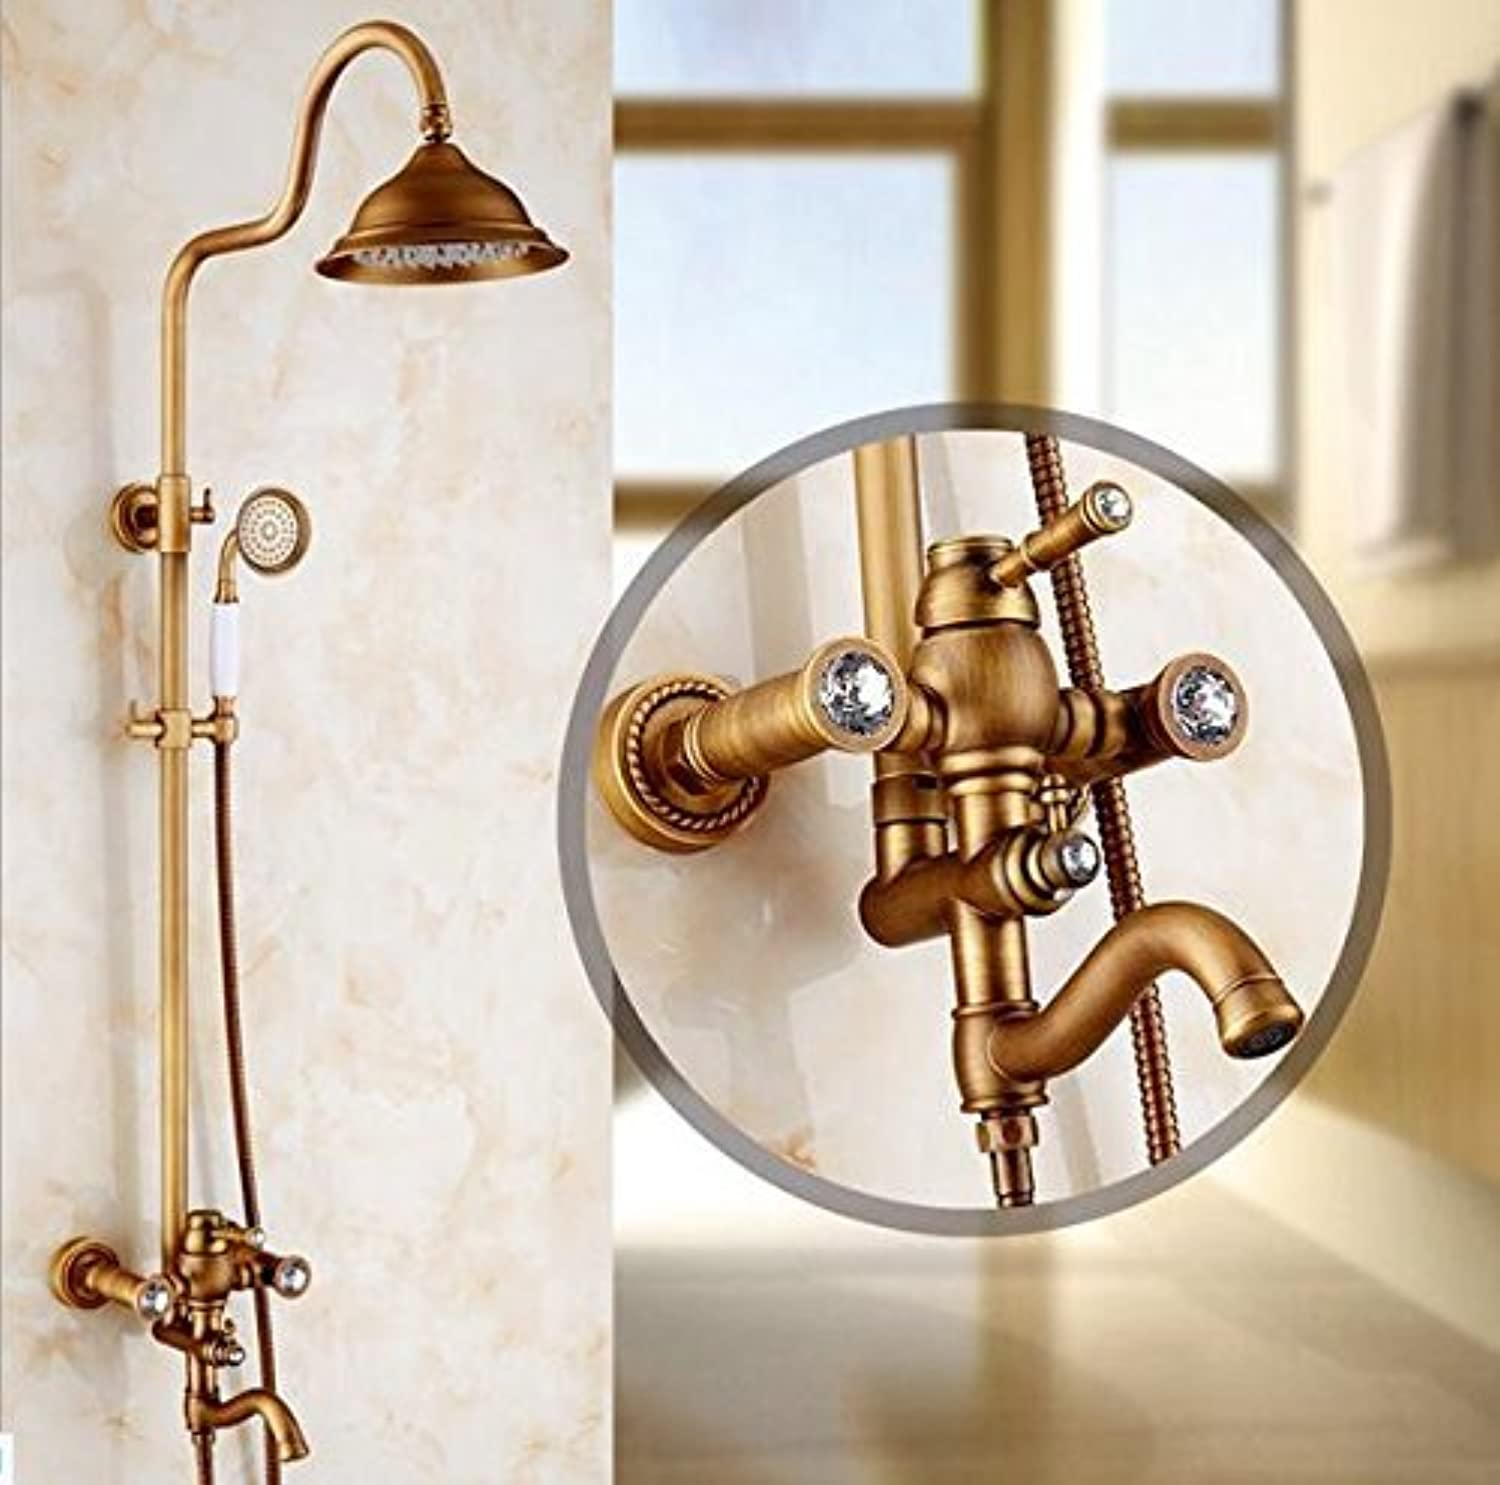 Antique Copper Full European Flower Flowers Diamond Shower Shower Faucet Retro Sprinkler Costume